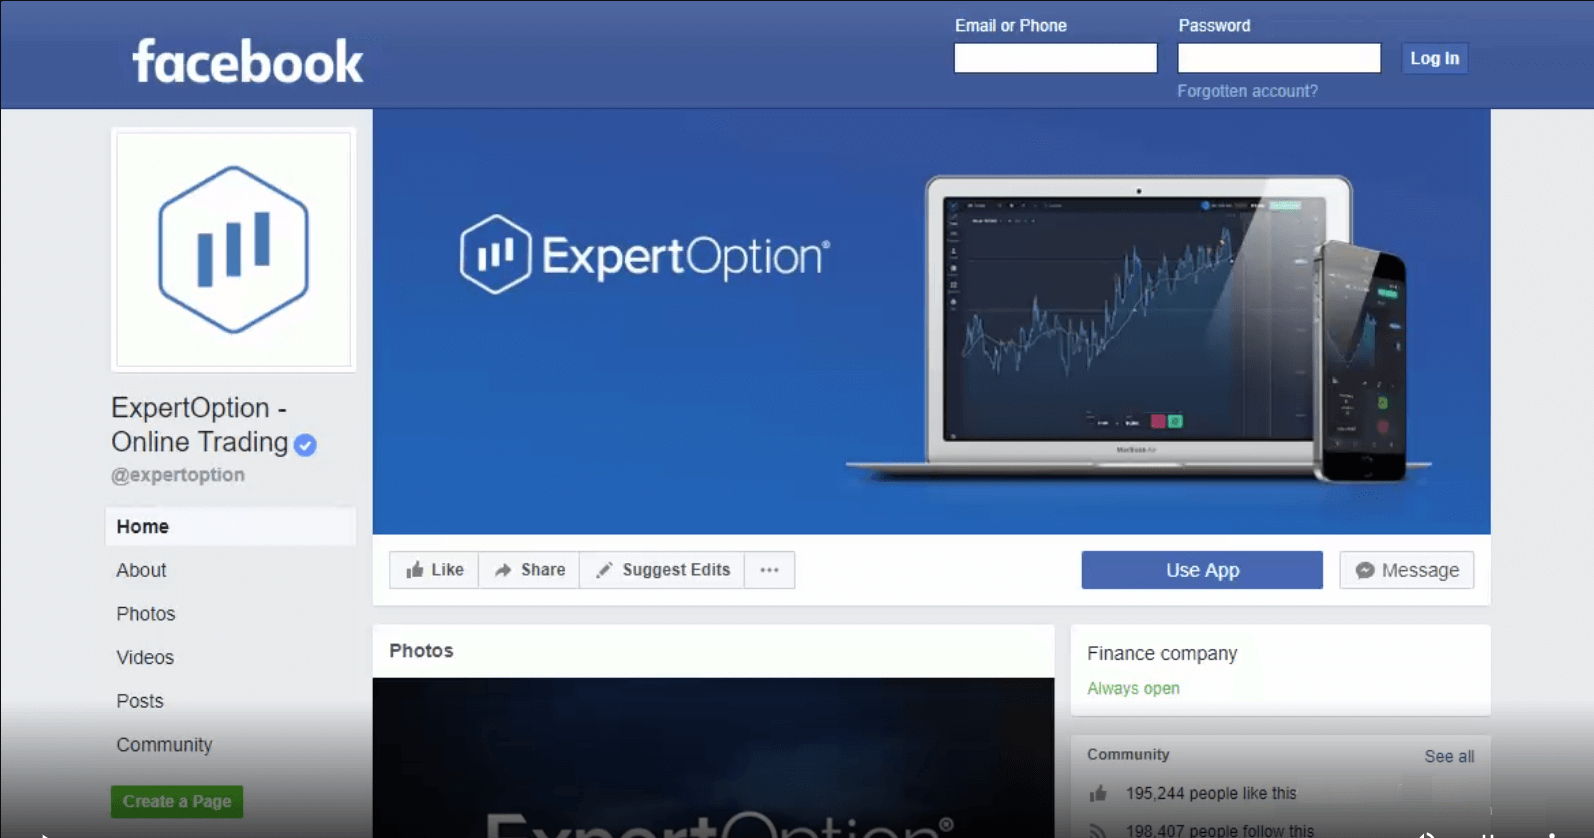 Review of ExpertOption on Facebook Page